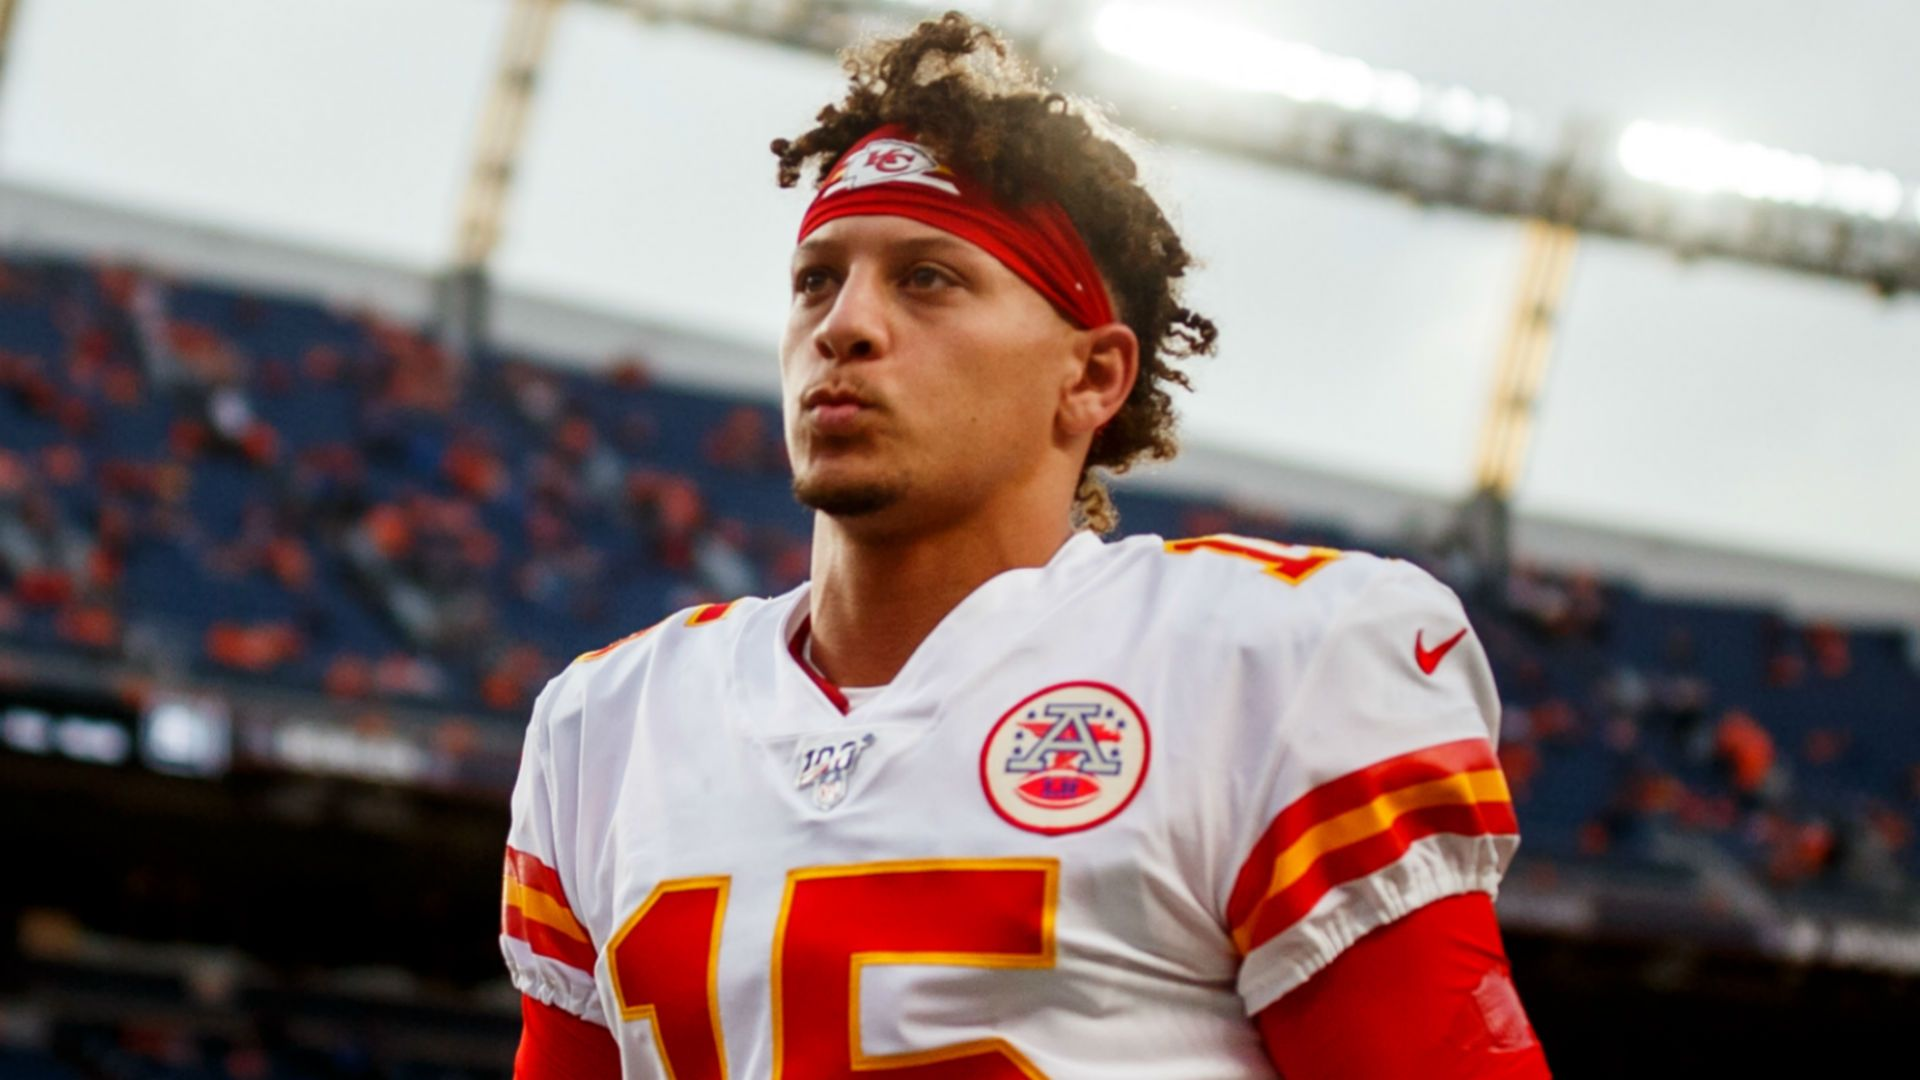 Patrick Mahomes, Russell Wilson, other NFL stars tweet